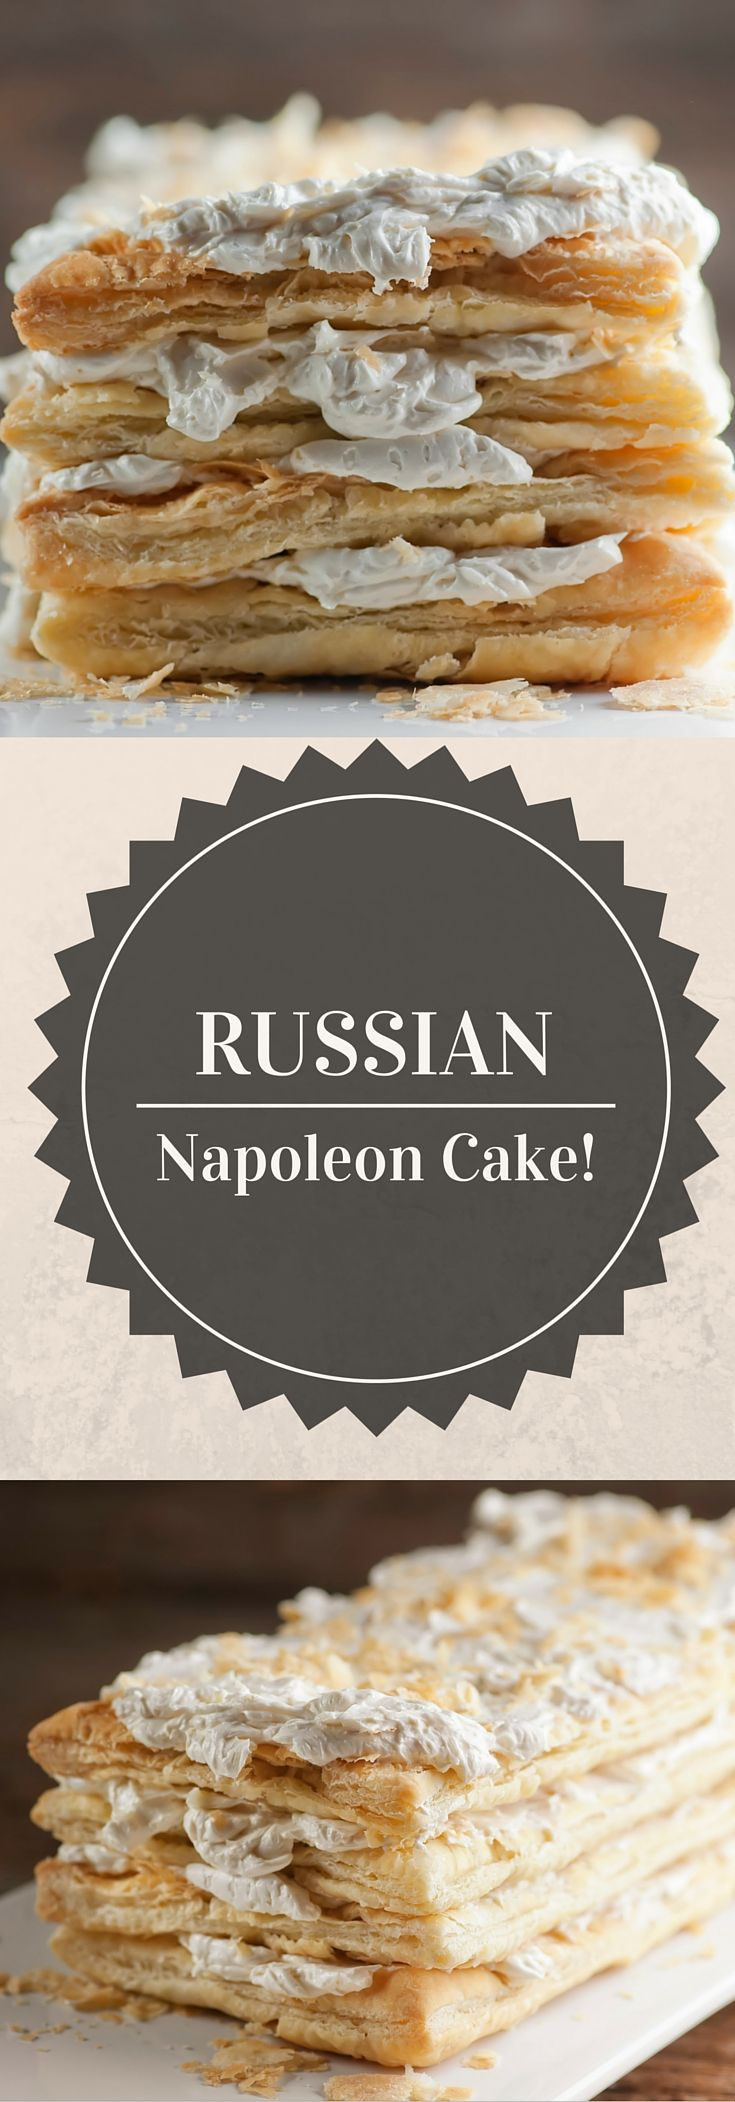 Just four ingredients go into this magically easy recipe for sumptuously delicious Russian Napoleon Cake!